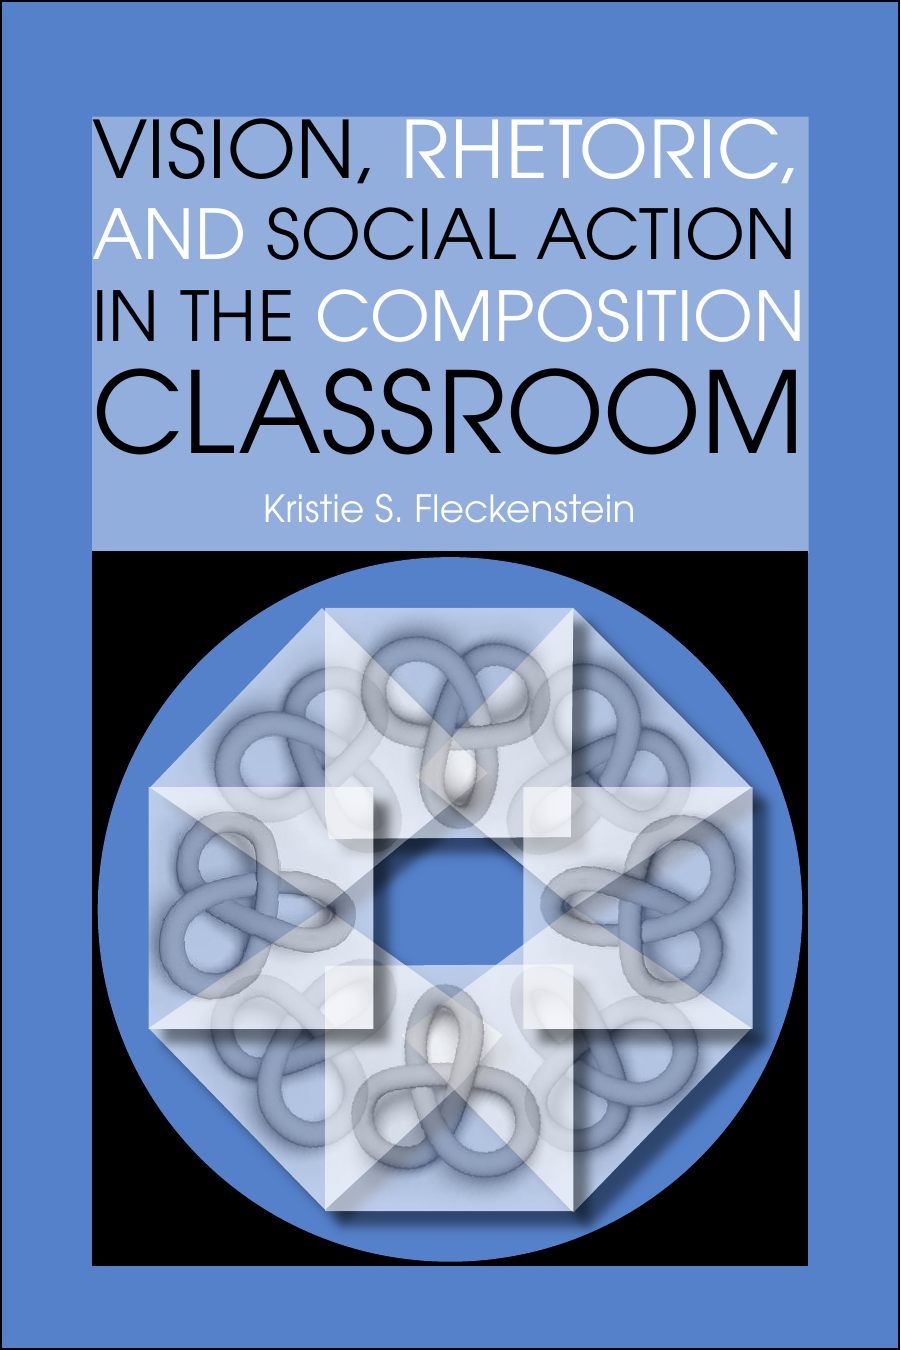 Kristie S Fleckenstein Vision Rhetoric And Social Action In The